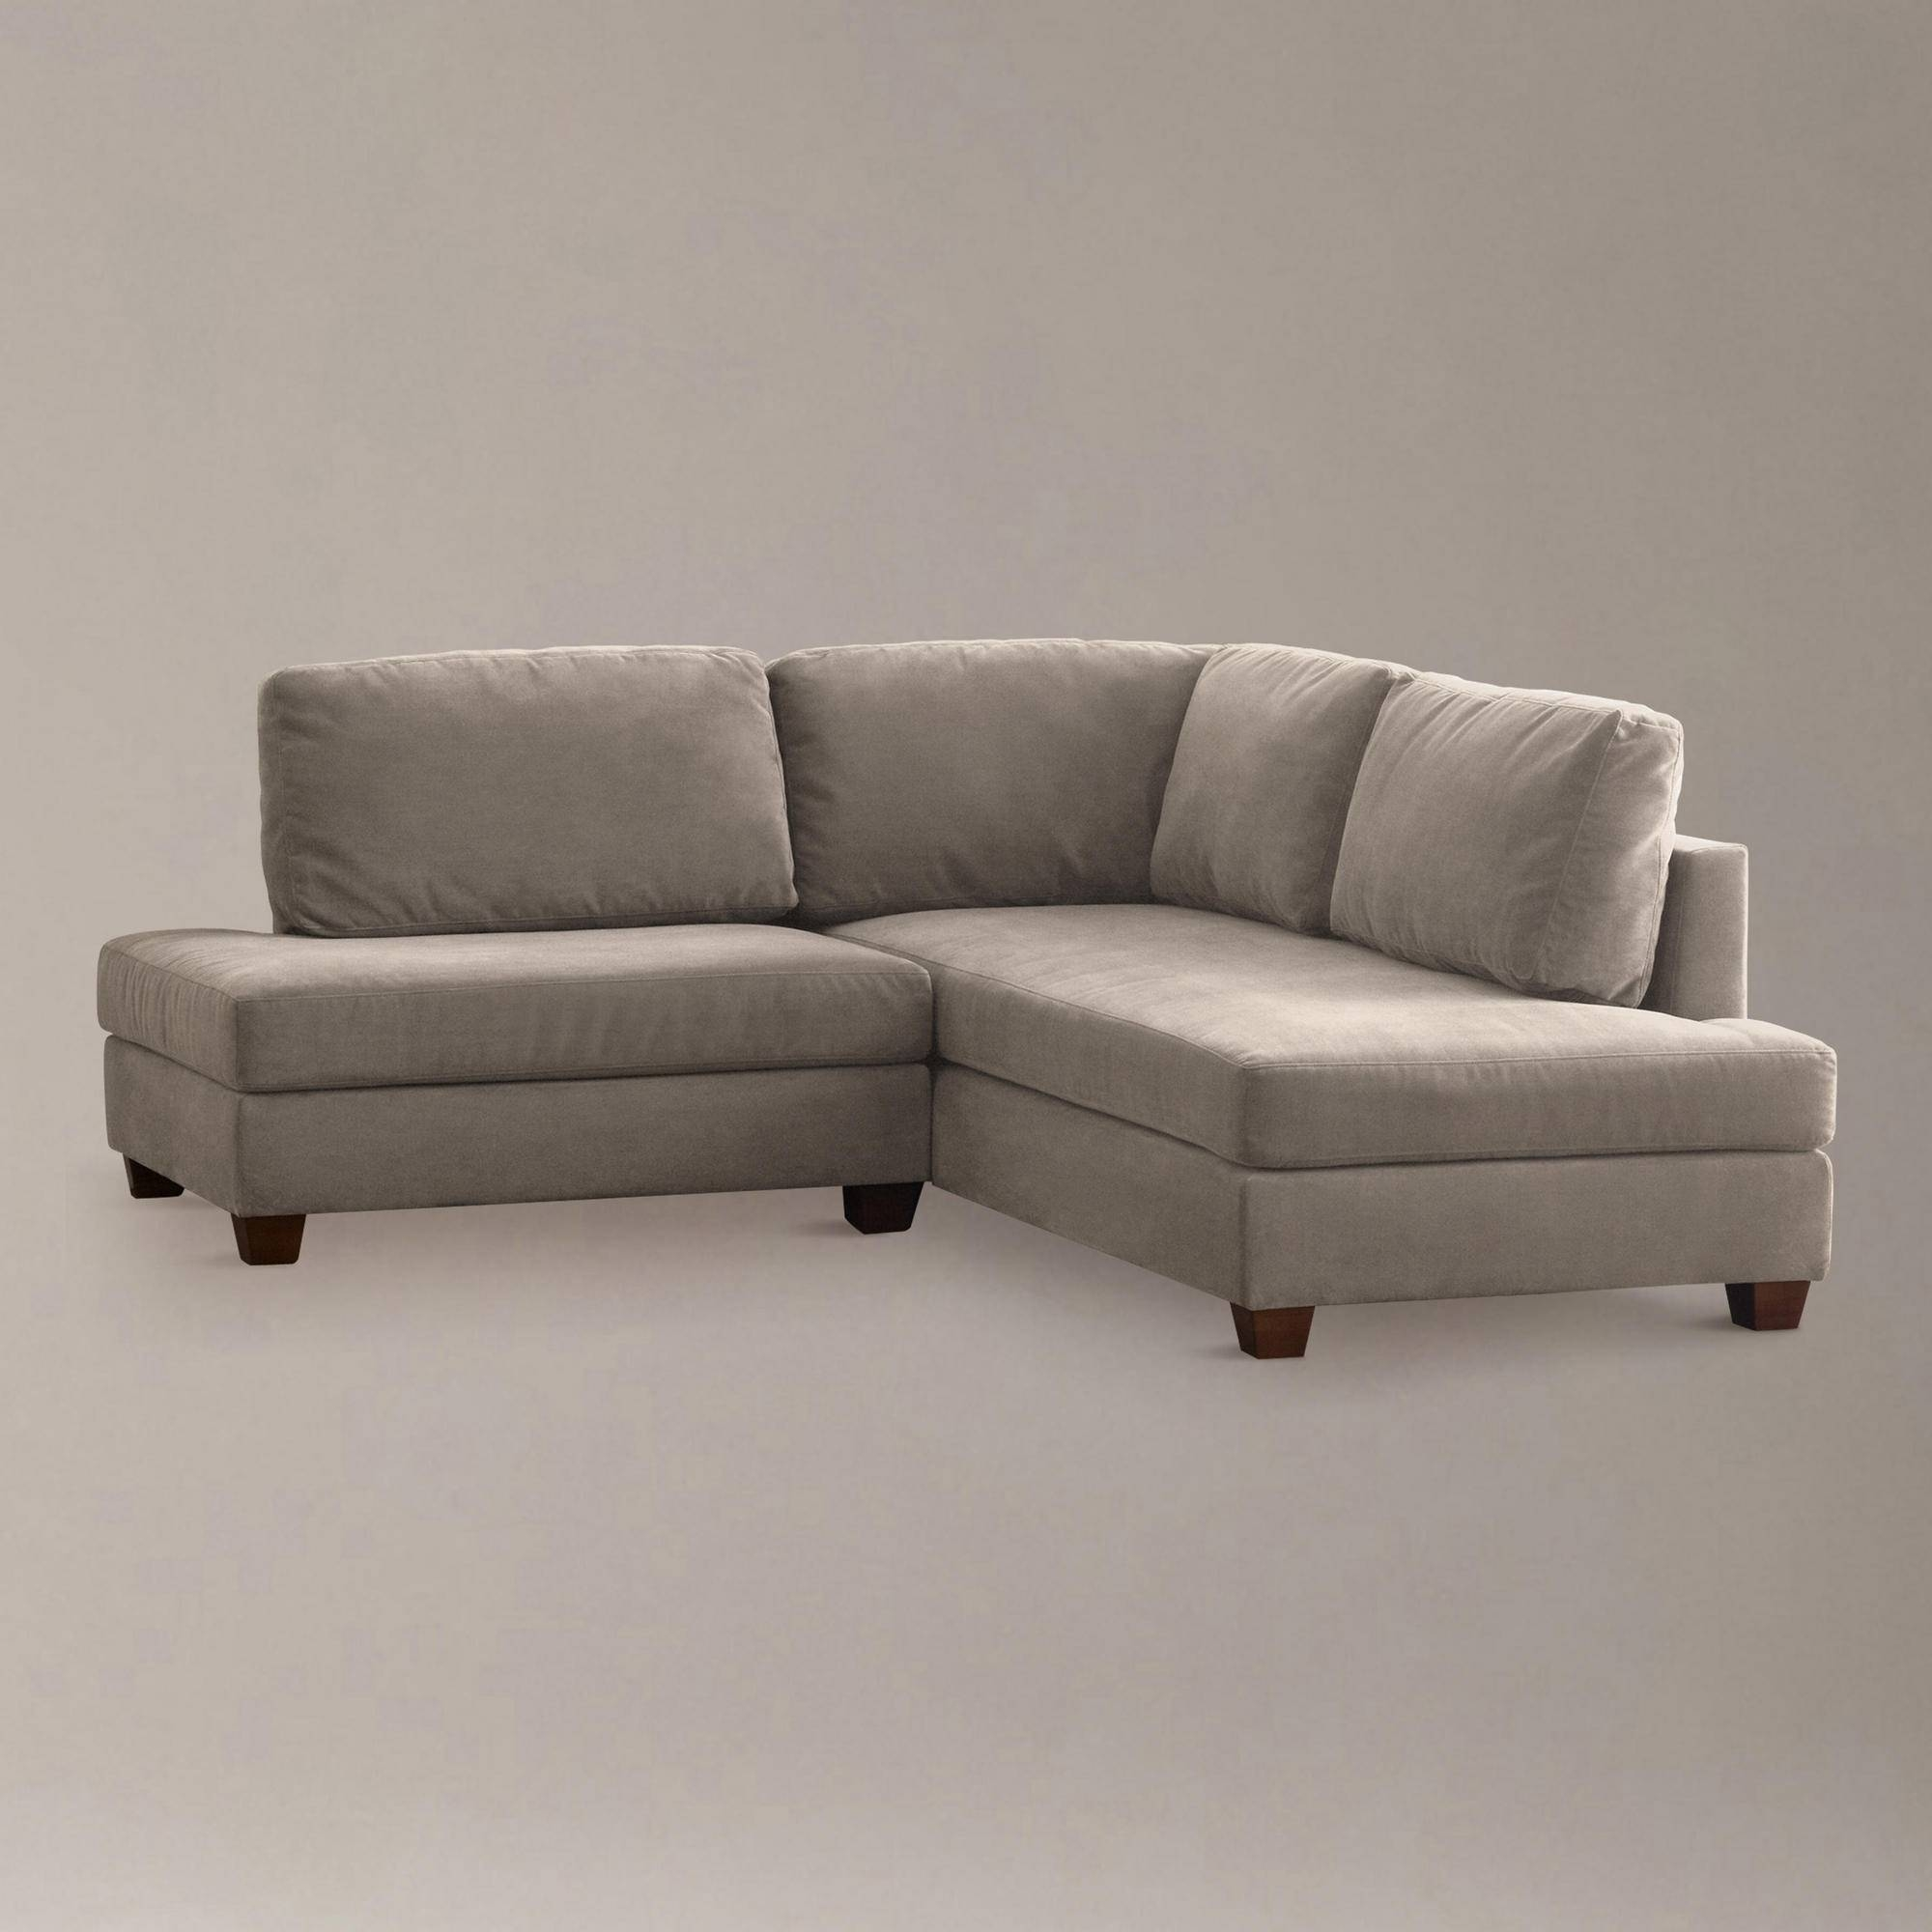 Sofas Center : Remarkable Best Sectional Sofa Images Ideas Amusing Intended For Cool Small Sofas (View 24 of 30)